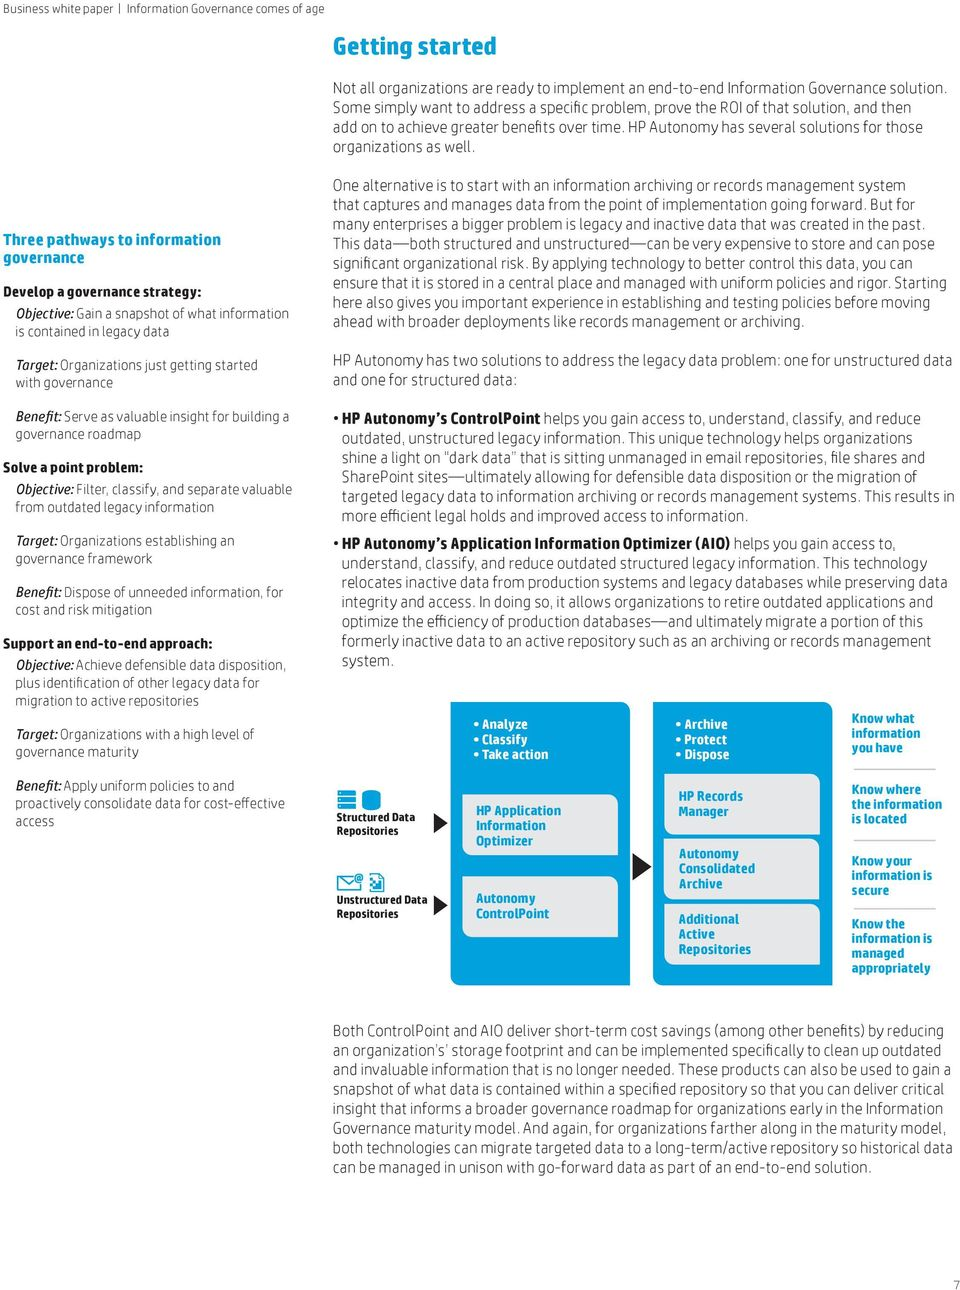 HP Autonomy has several solutions for those organizations as well.